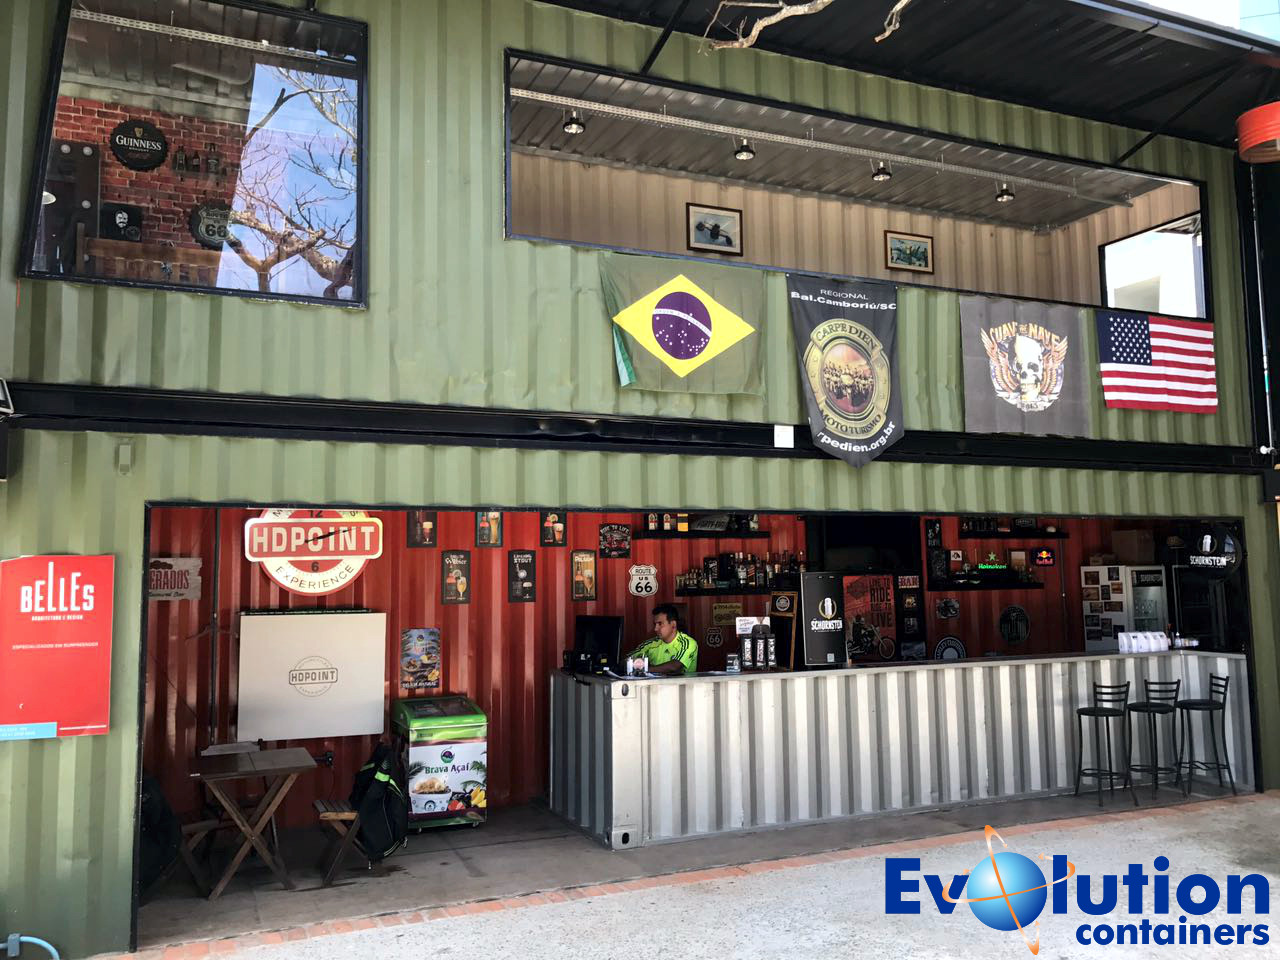 Hd Point Bar projetado em Container em Itajai